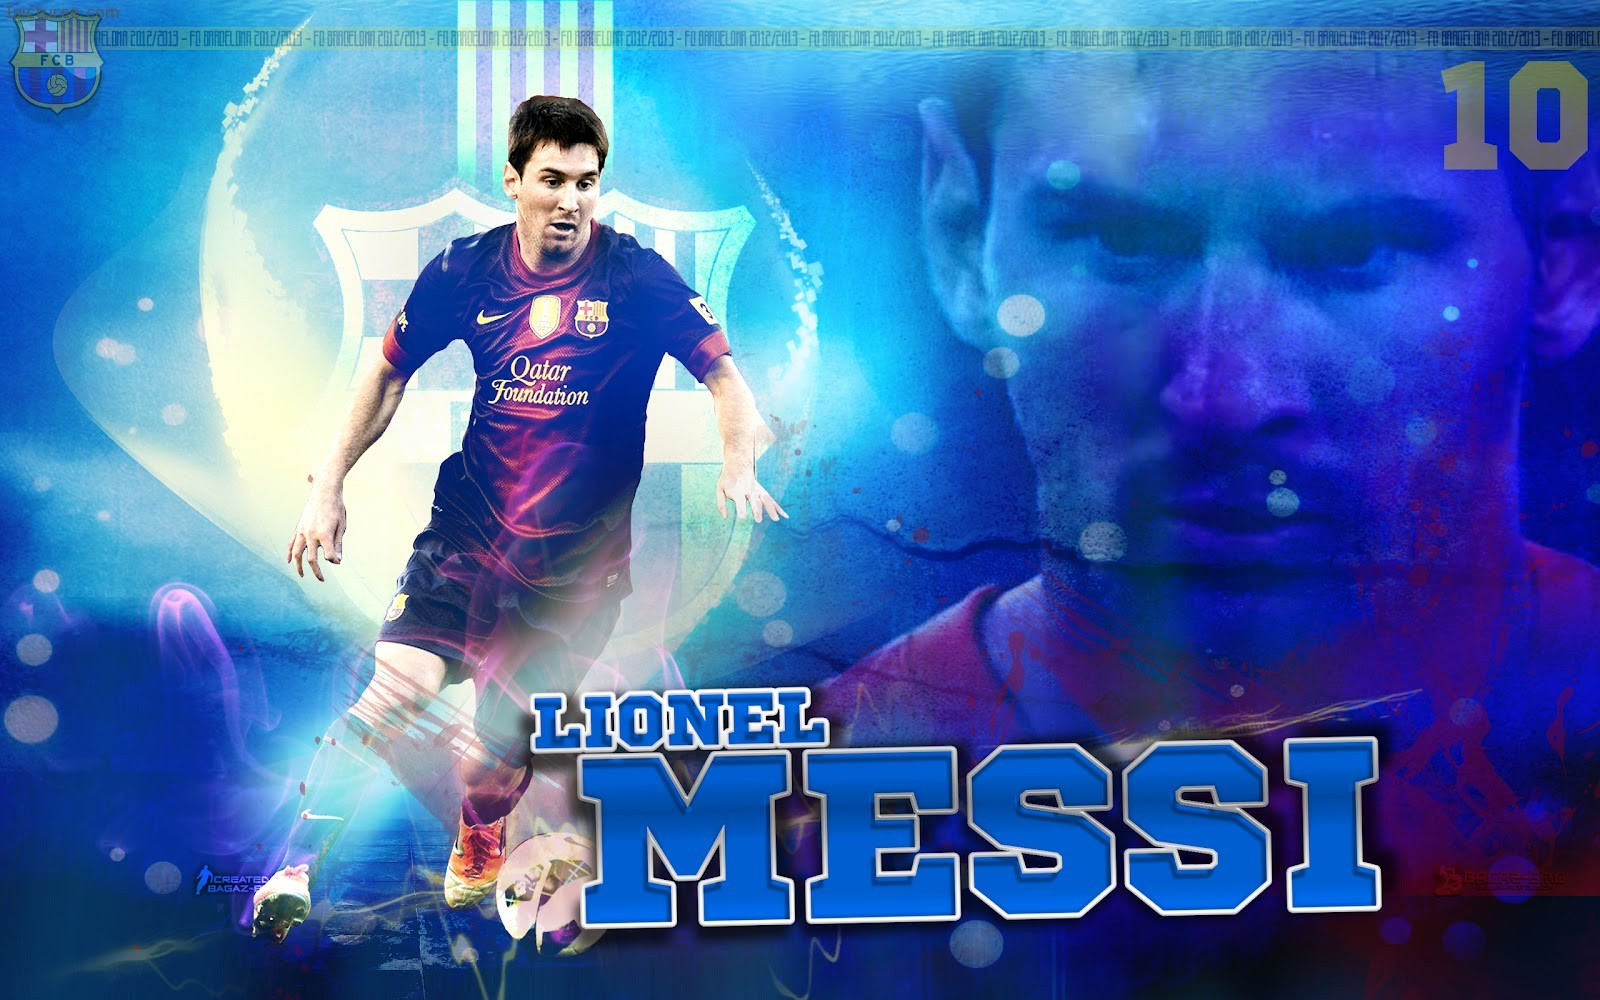 Messi wallpaper 2012, messi wallpaper 2012 hd